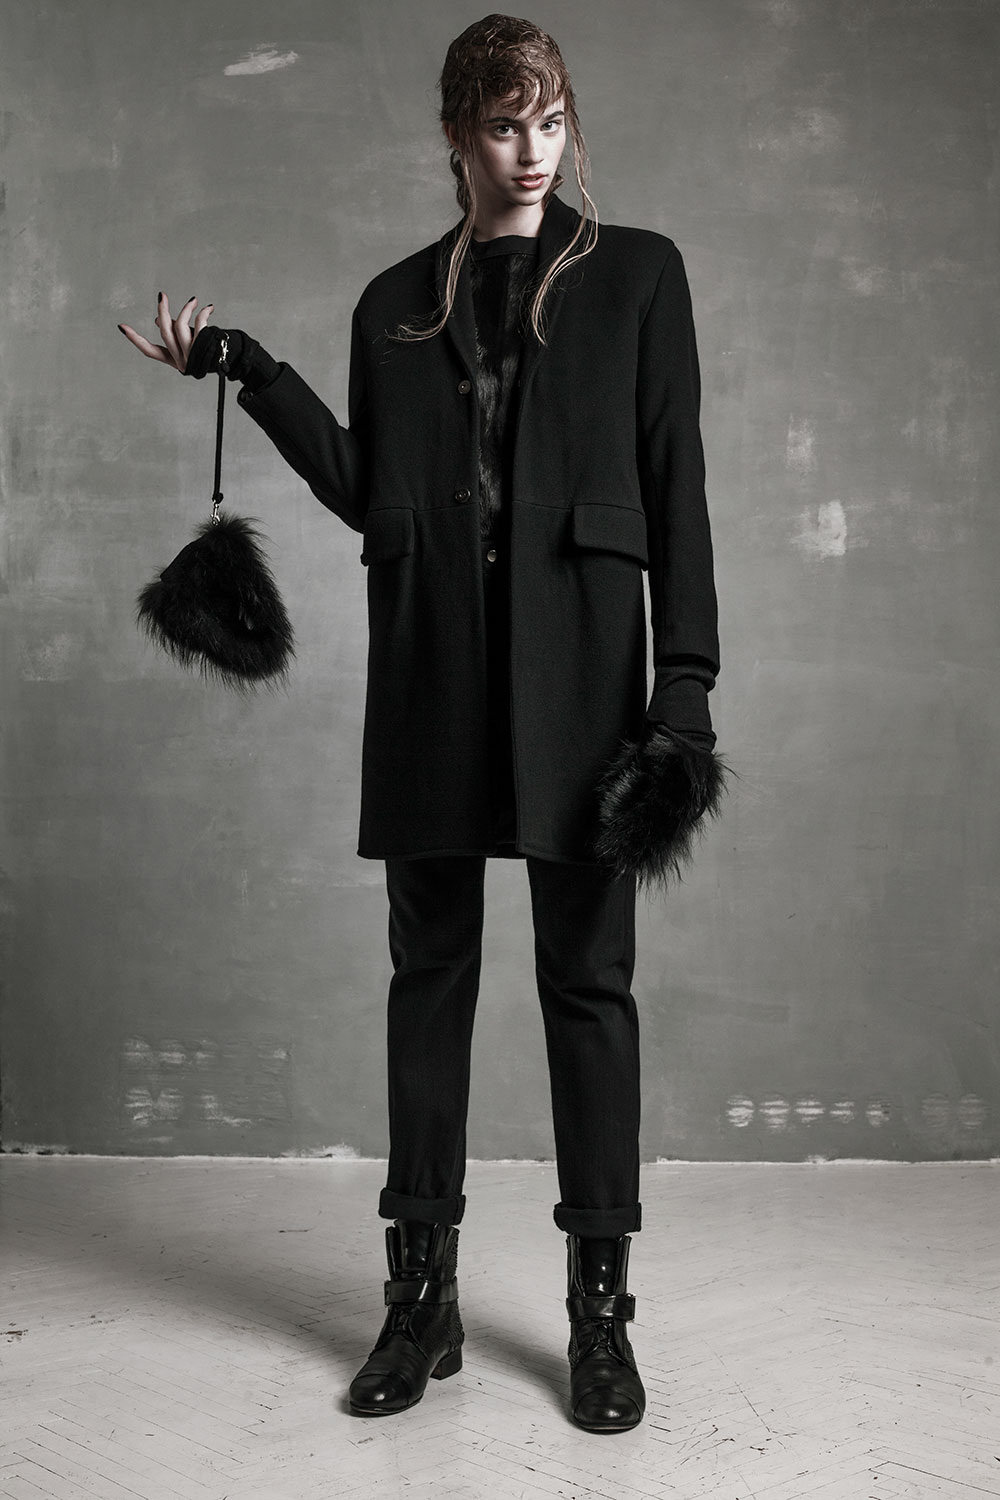 LB8 / Fall-Winter 2014 / Mark Molnar